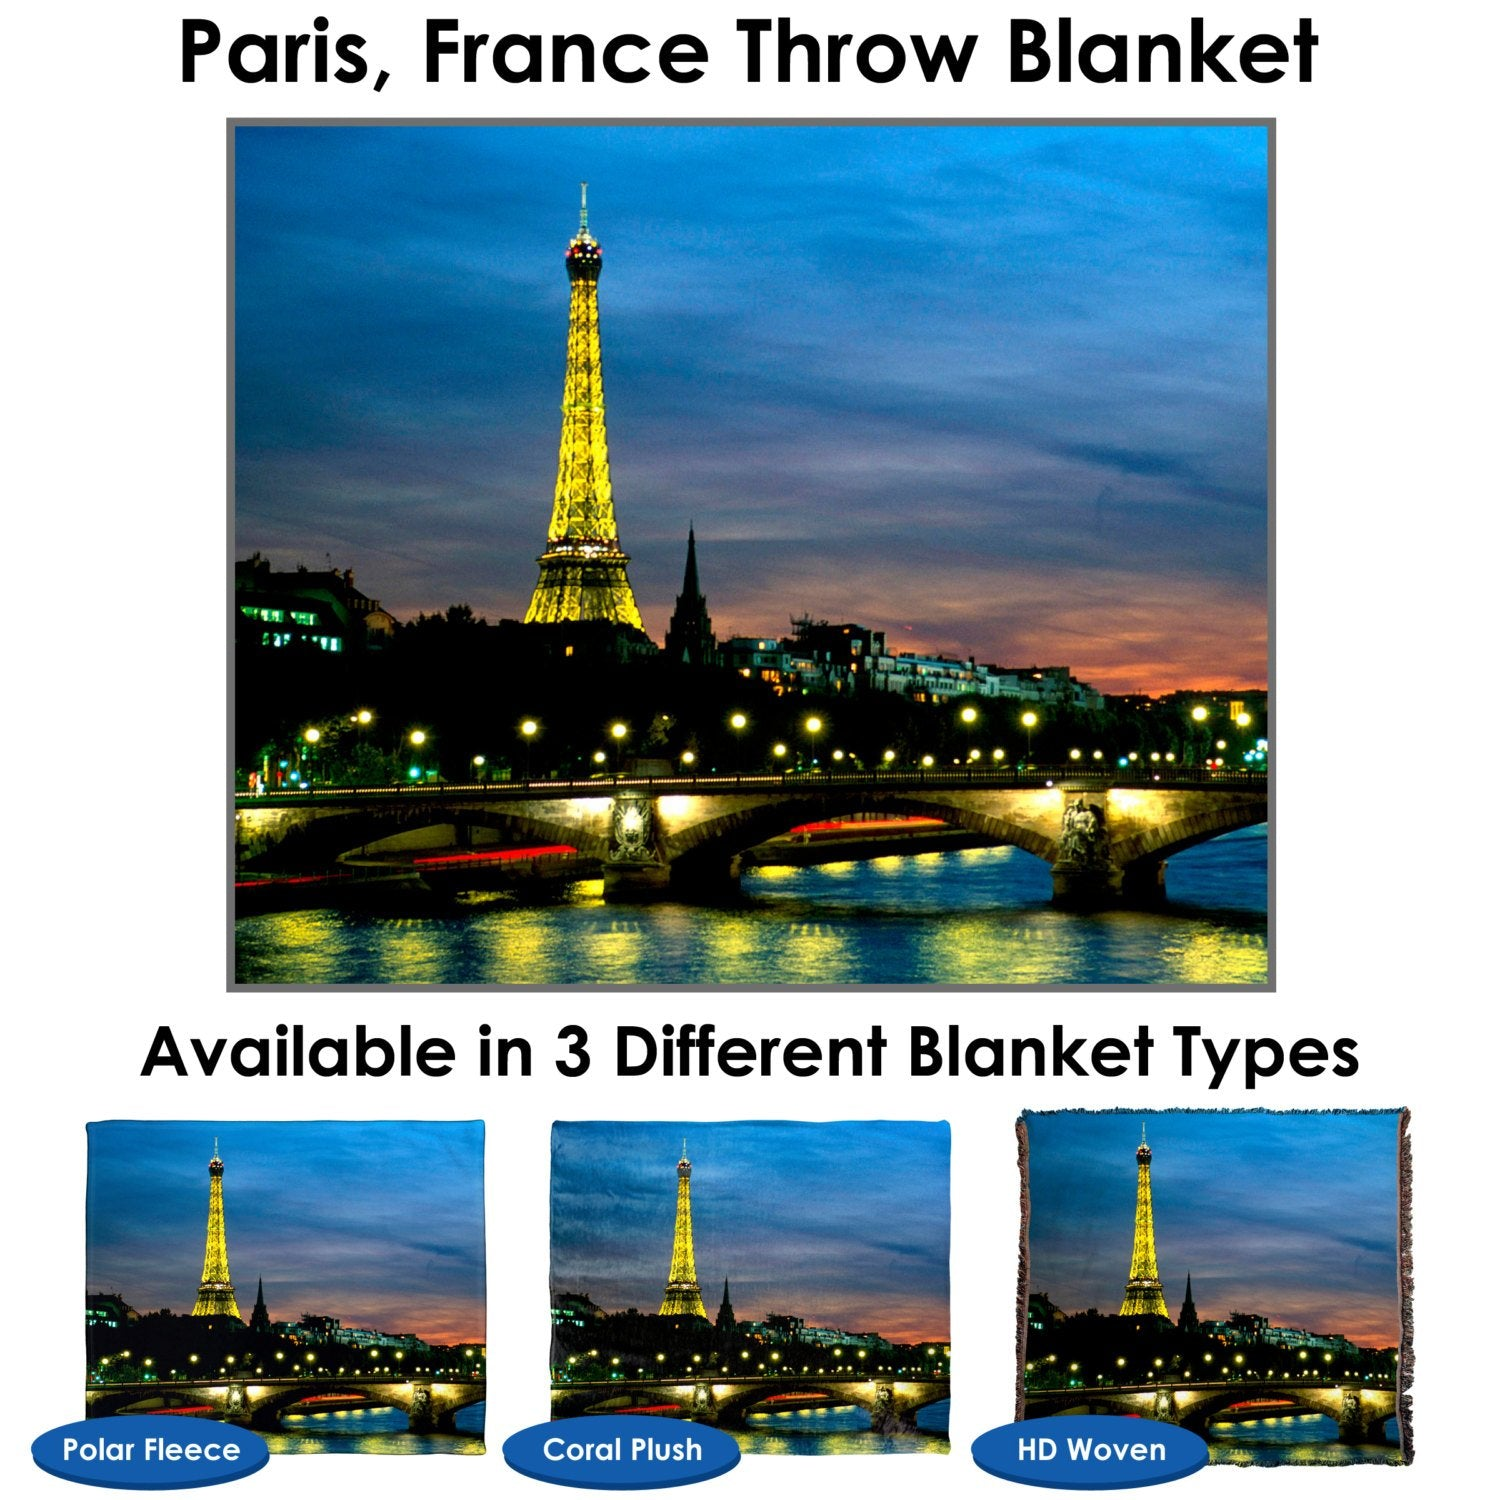 Paris, France Throw Blanket / Tapestry Wall Hanging - Standard Multi-color